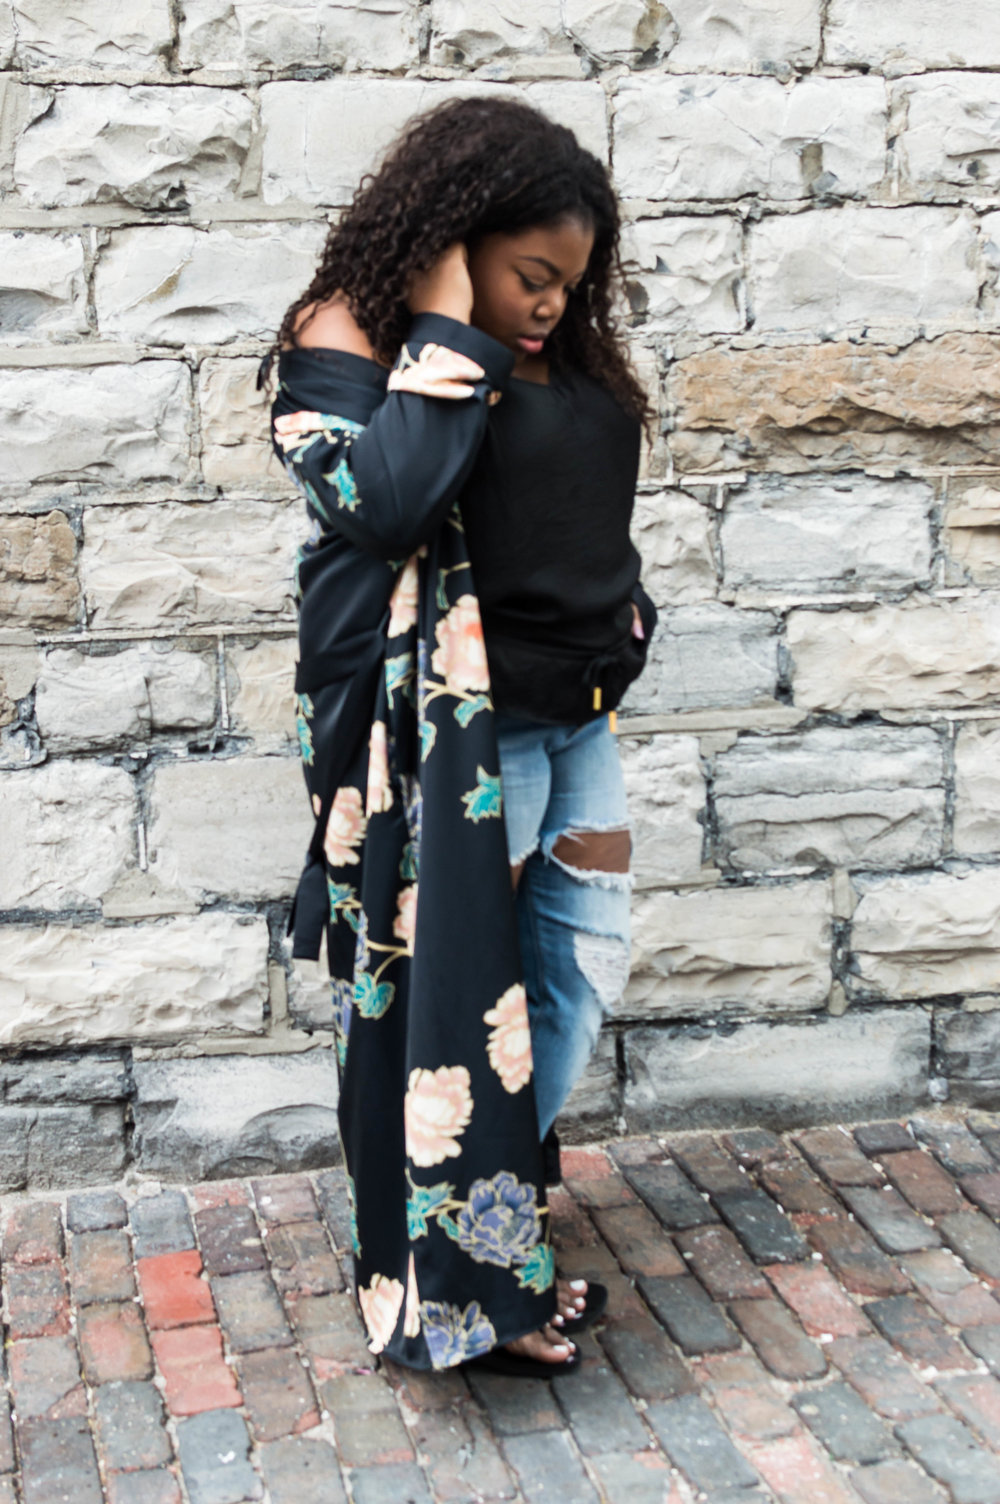 Flower Power - Kimono: H&M, Top: Finders, Jeans: Forever 21